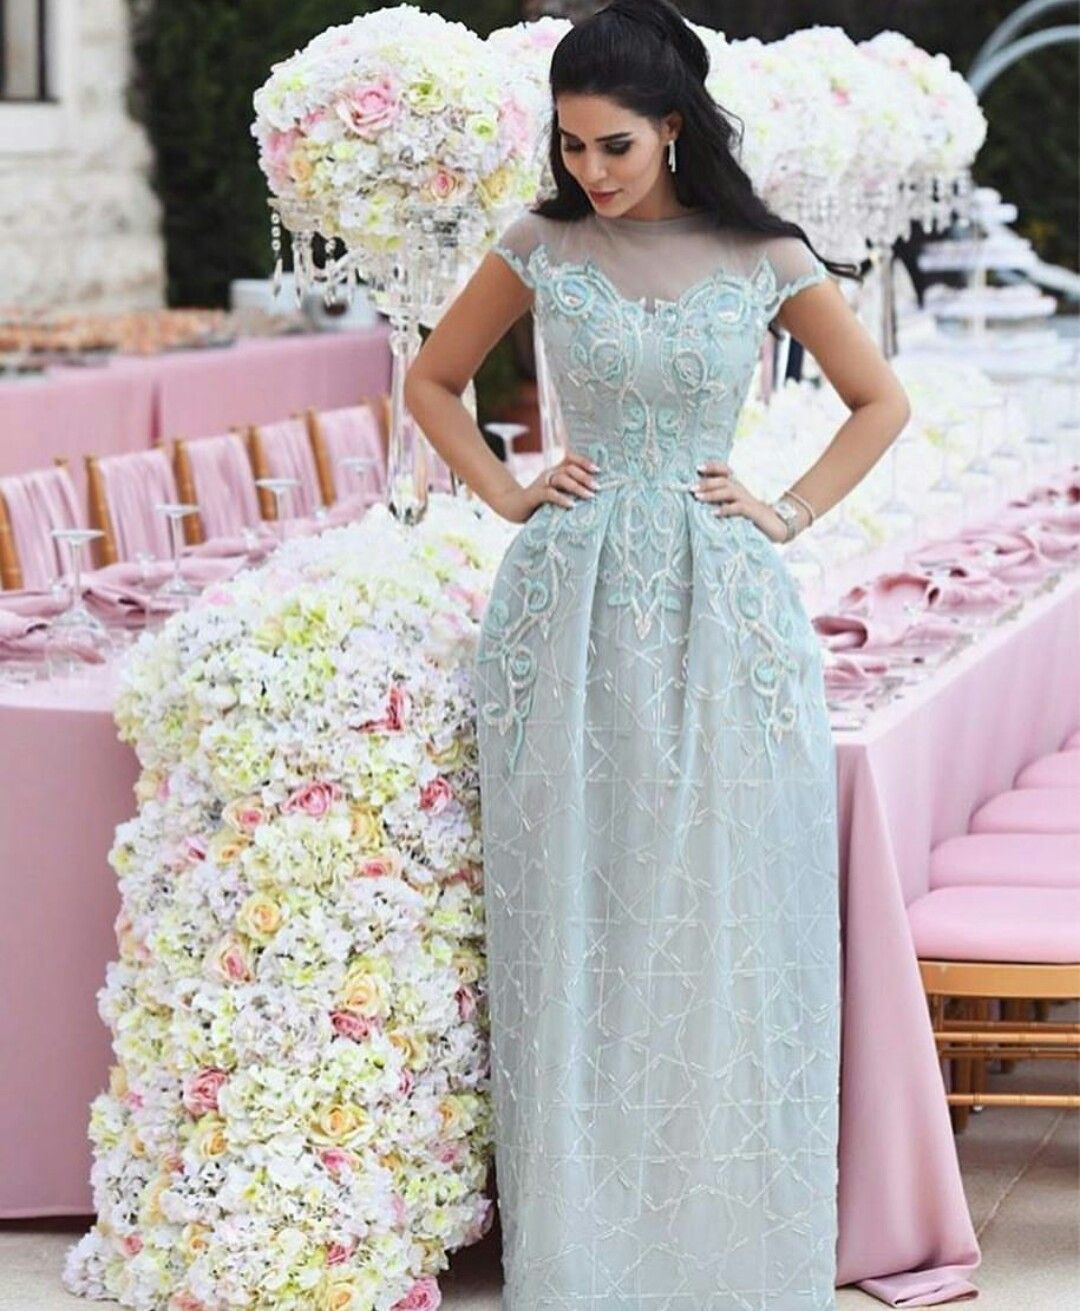 Pretty Engagement Party Dress For The Bride Images - Wedding Ideas ...